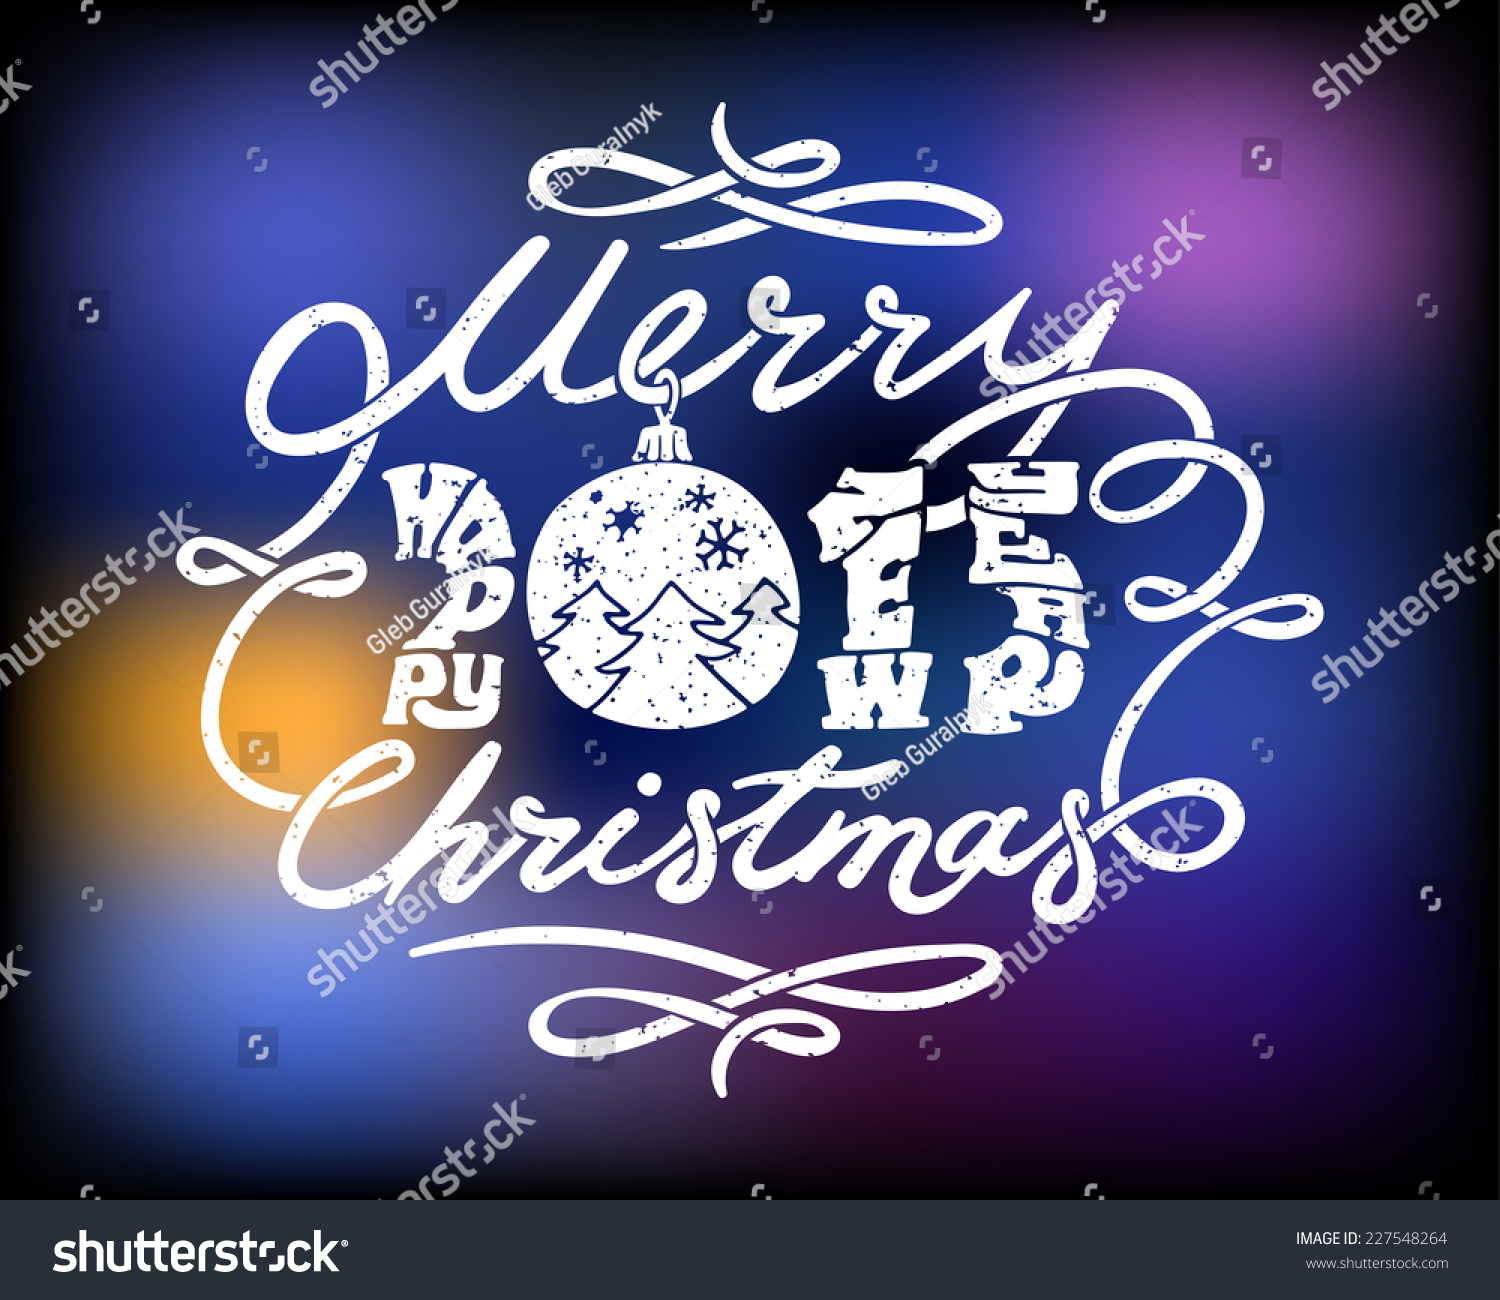 Merry christmas happy new year greetings stock vector 227548264 merry christmas and happy new year greetings 2015 on blurry background kristyandbryce Choice Image